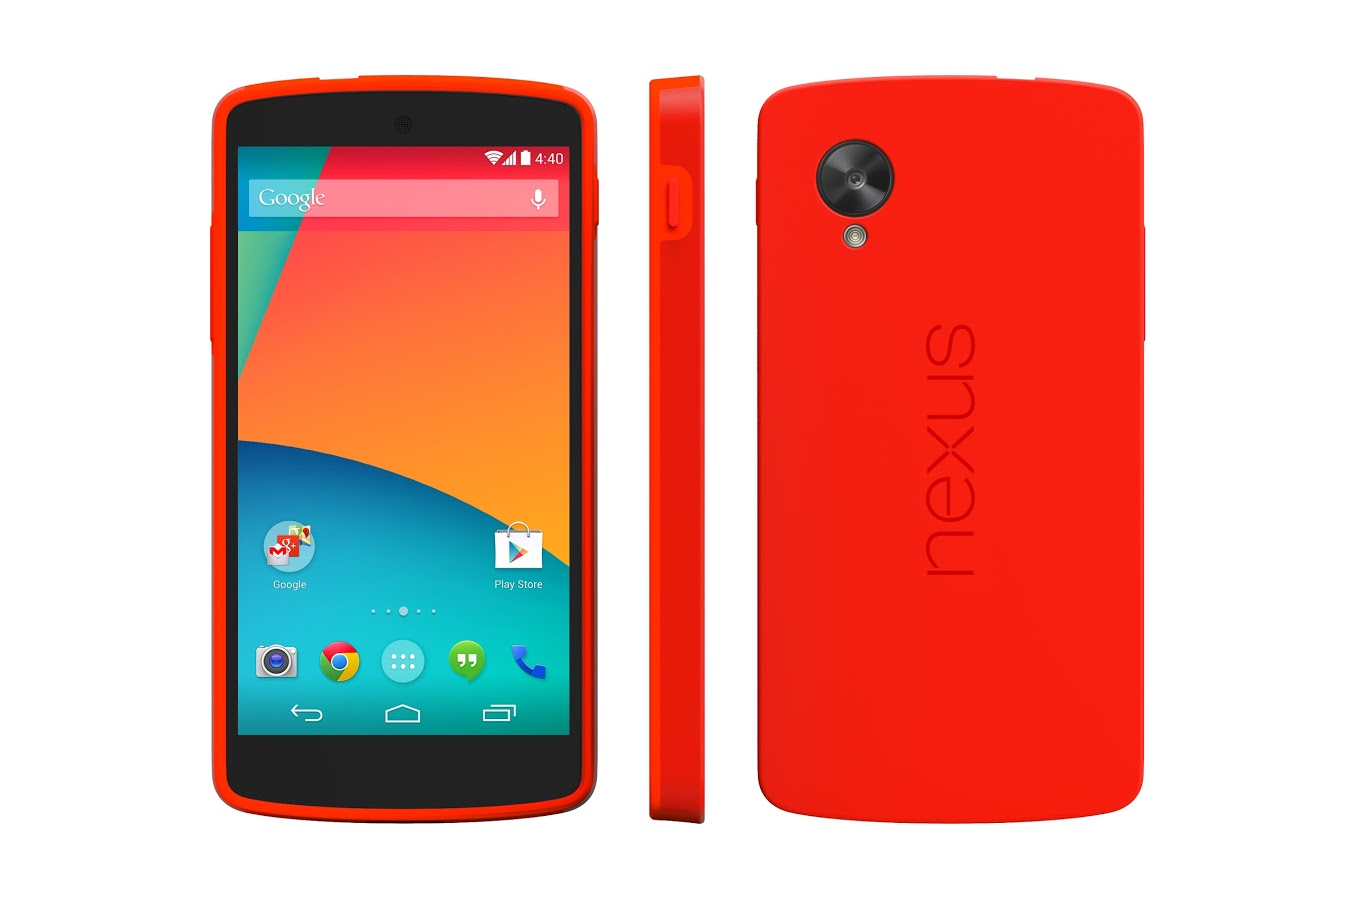 LG Nexus 4 Sold out in Minutes